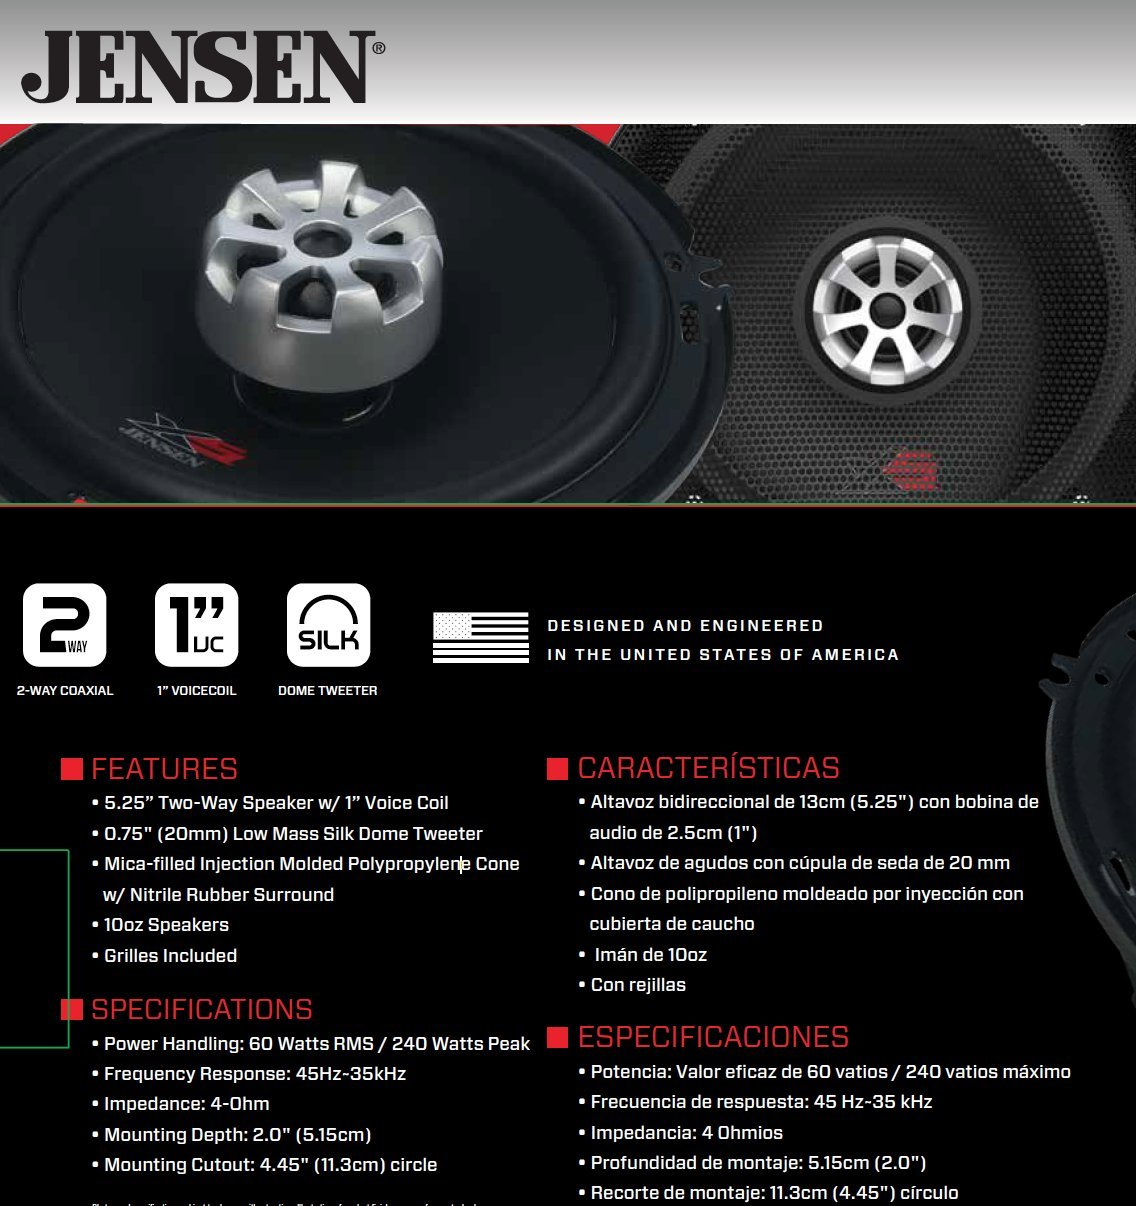 Jensen XS525 2-Way 5.25 inch High Performance Car Speakers with 240 Watt Peak Power and 1 inch Voice Coils with 20mm Silk Dome Tweeters